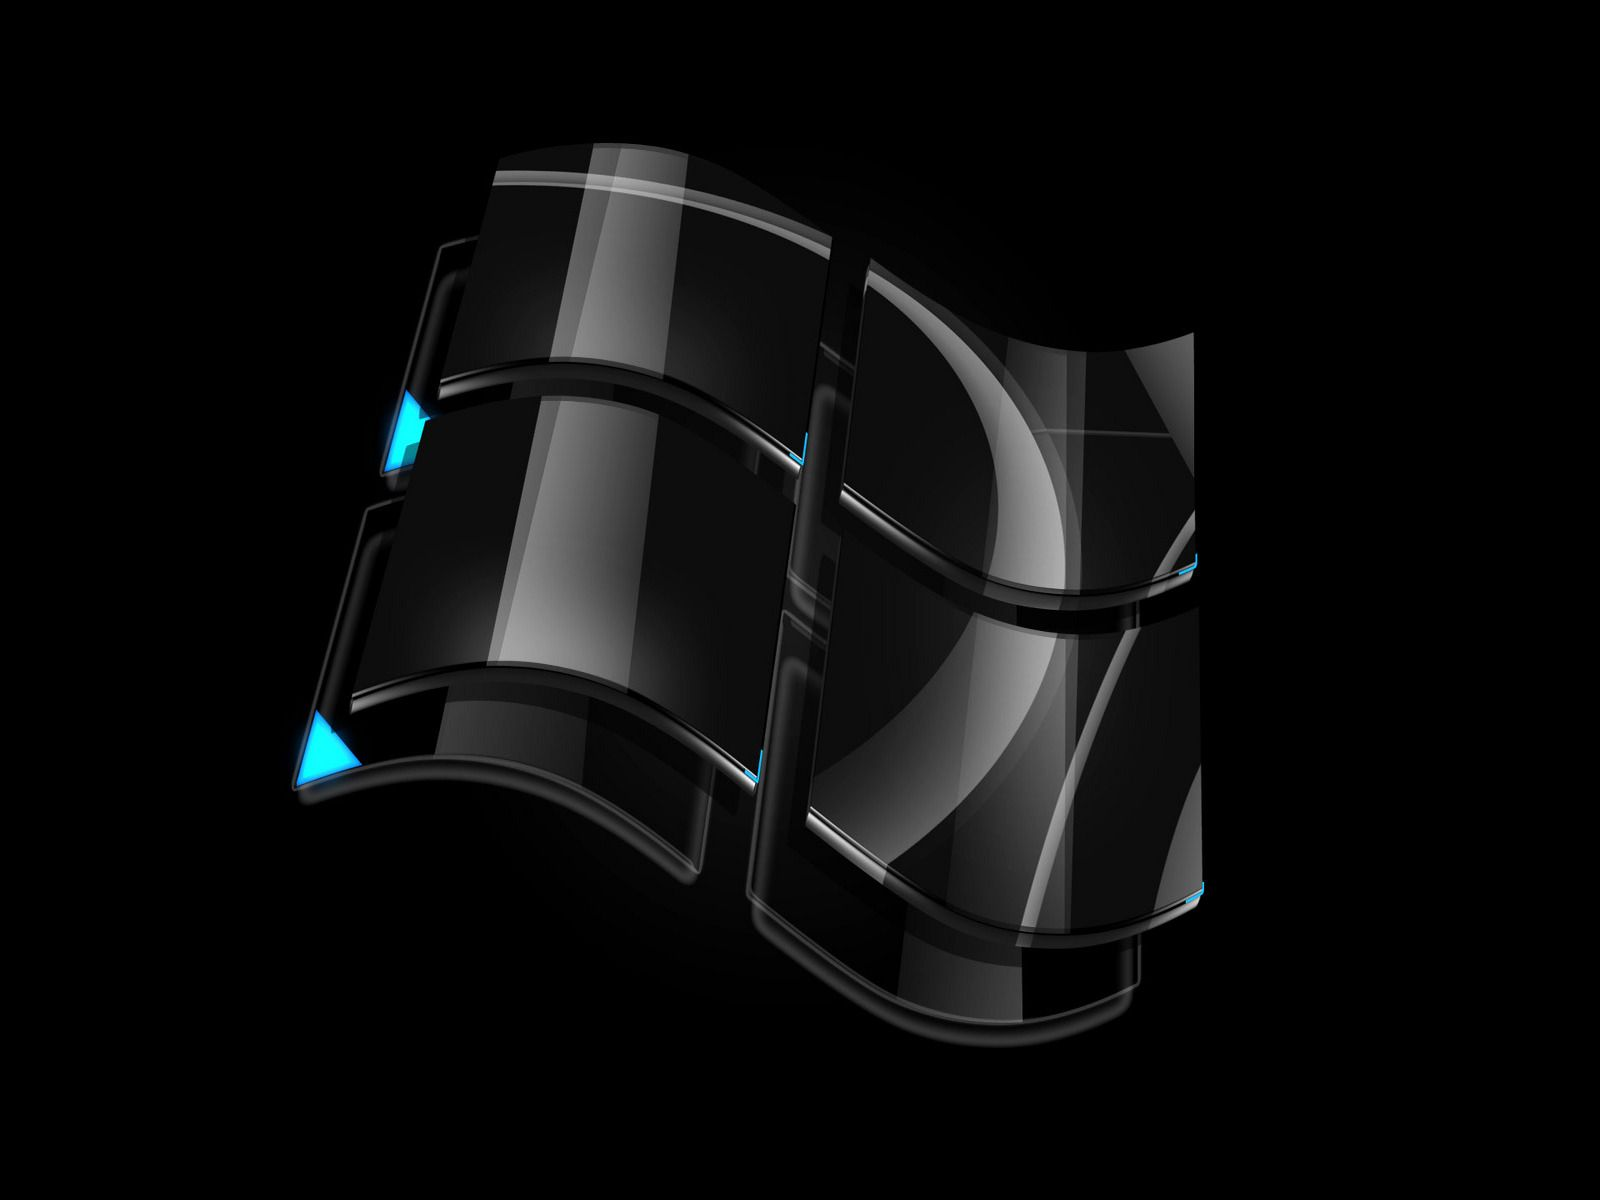 Black Windows - Wallpaper black windows vista logo wallpaper 400x300 badass windows hd wallpaper